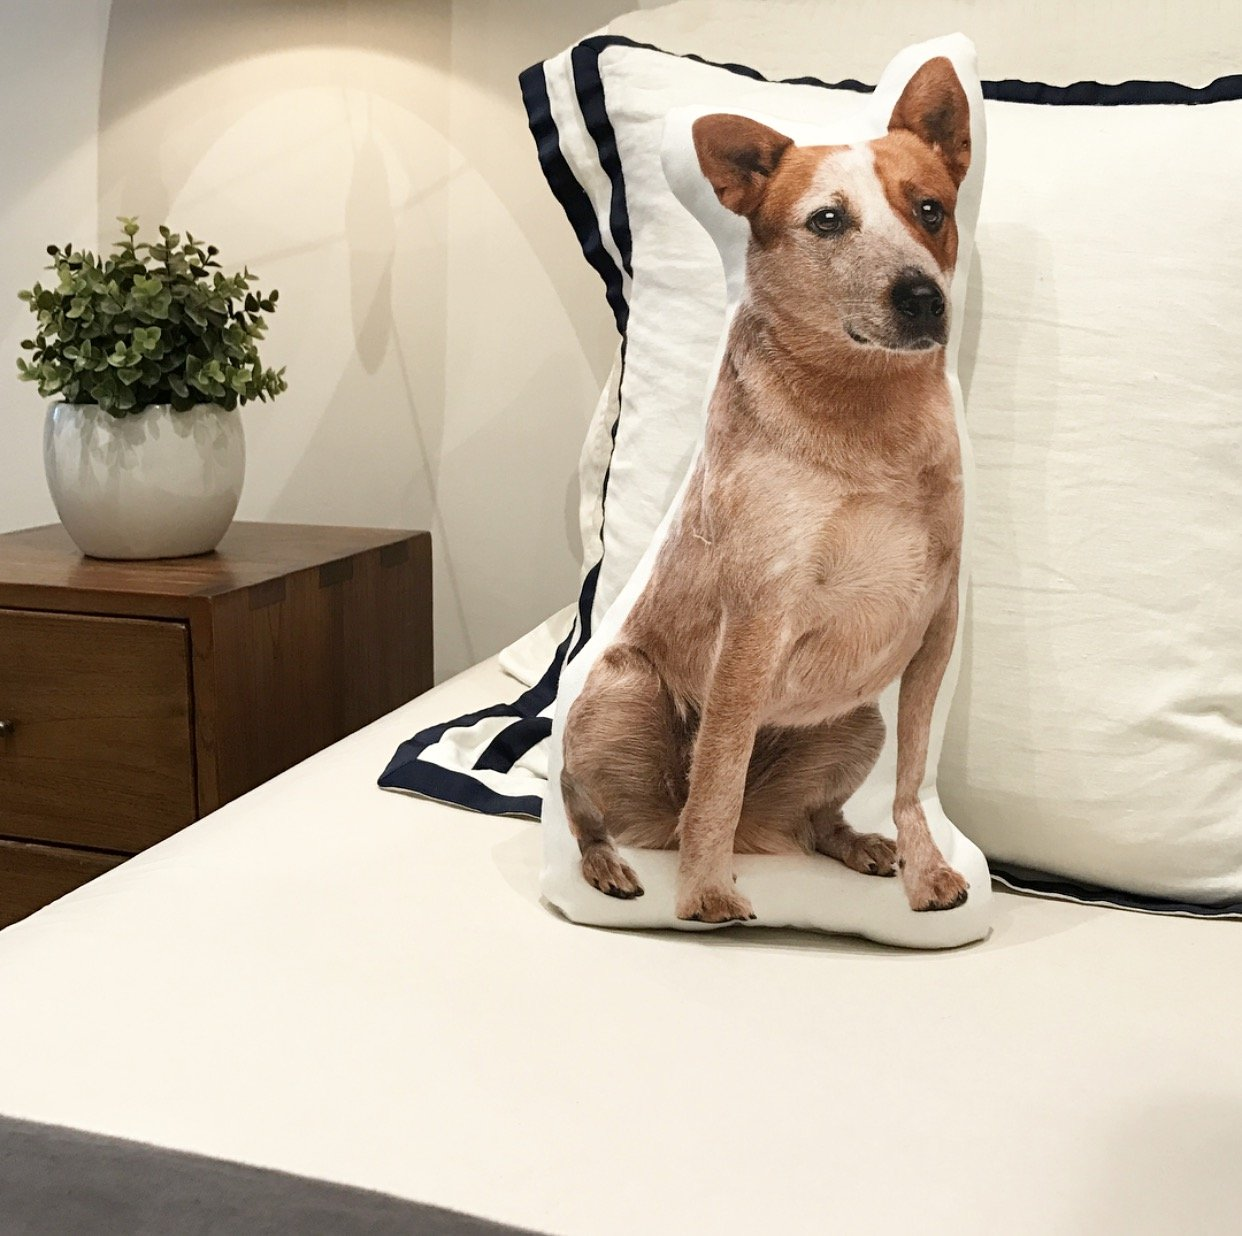 Cushion Co - Red Heeler Dog Shaped Pillow 16'' x 12'' by Cushion Co (Image #7)